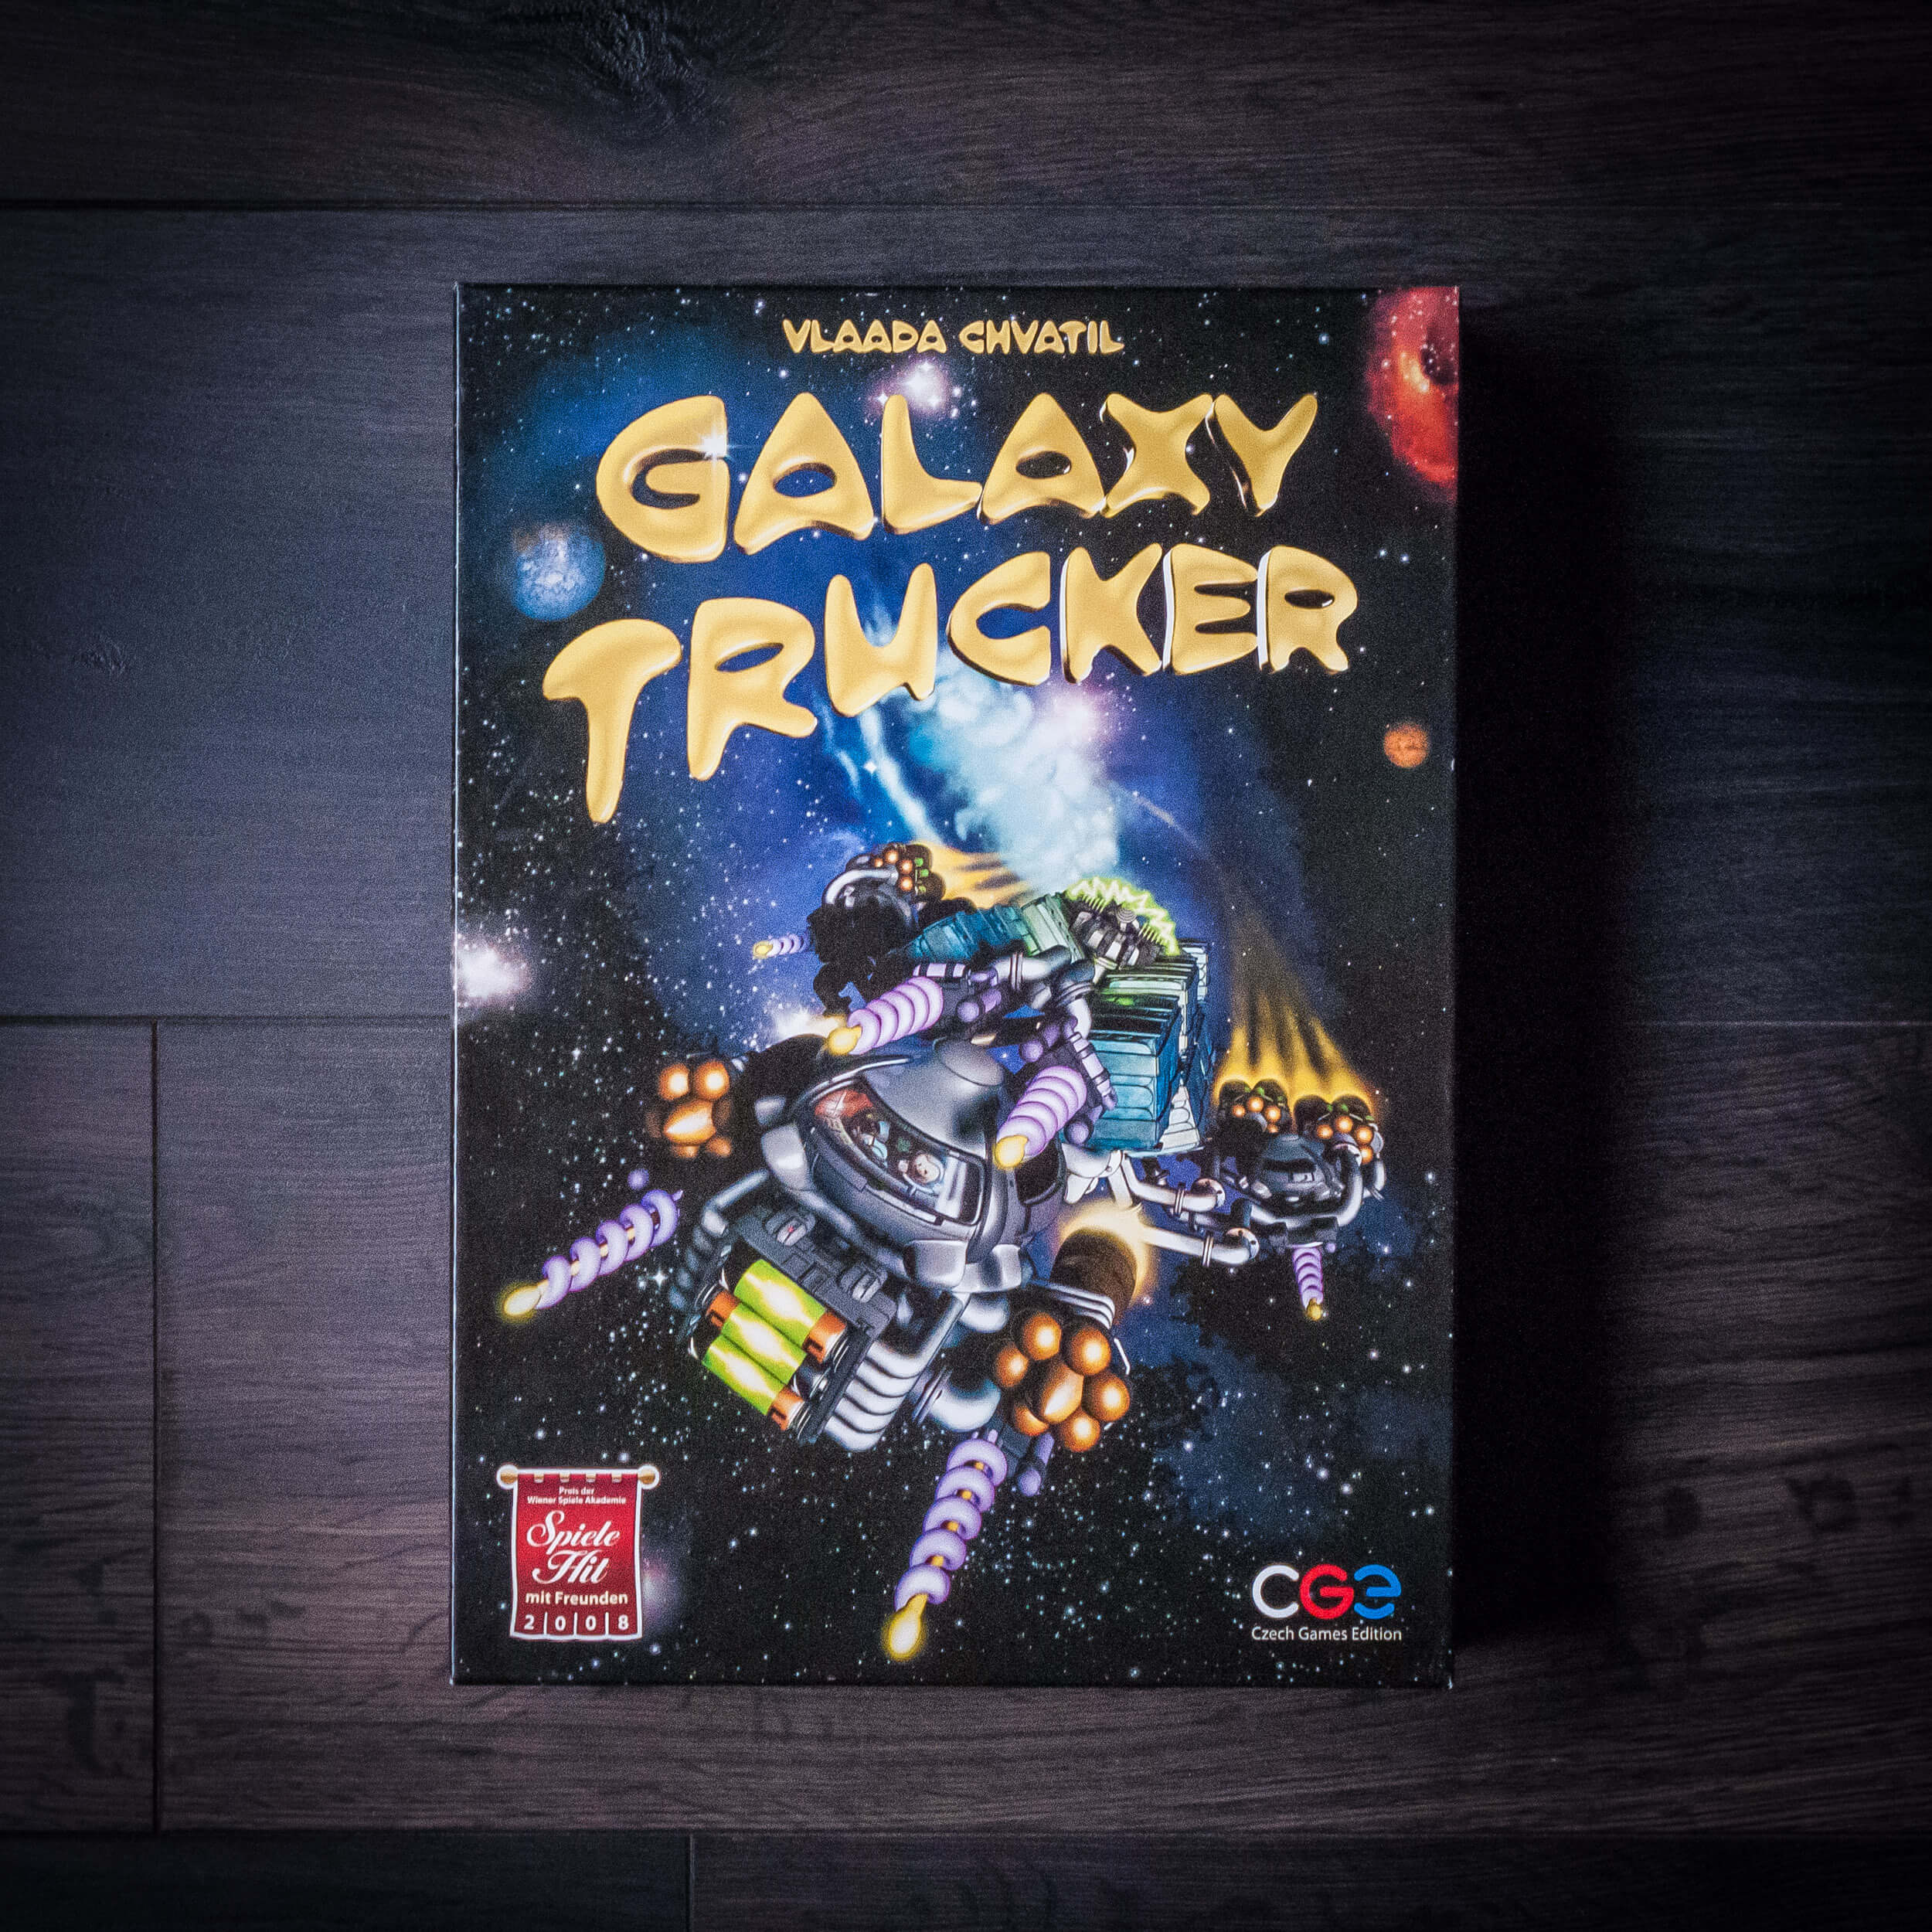 Galaxy Trucker. In this game, players quickly build spaceships out of scavenged parts, afterwards running them through a gauntlet of adventures. This results in much hilarity and agony as the players' spaceships struggle to survive in one piece.